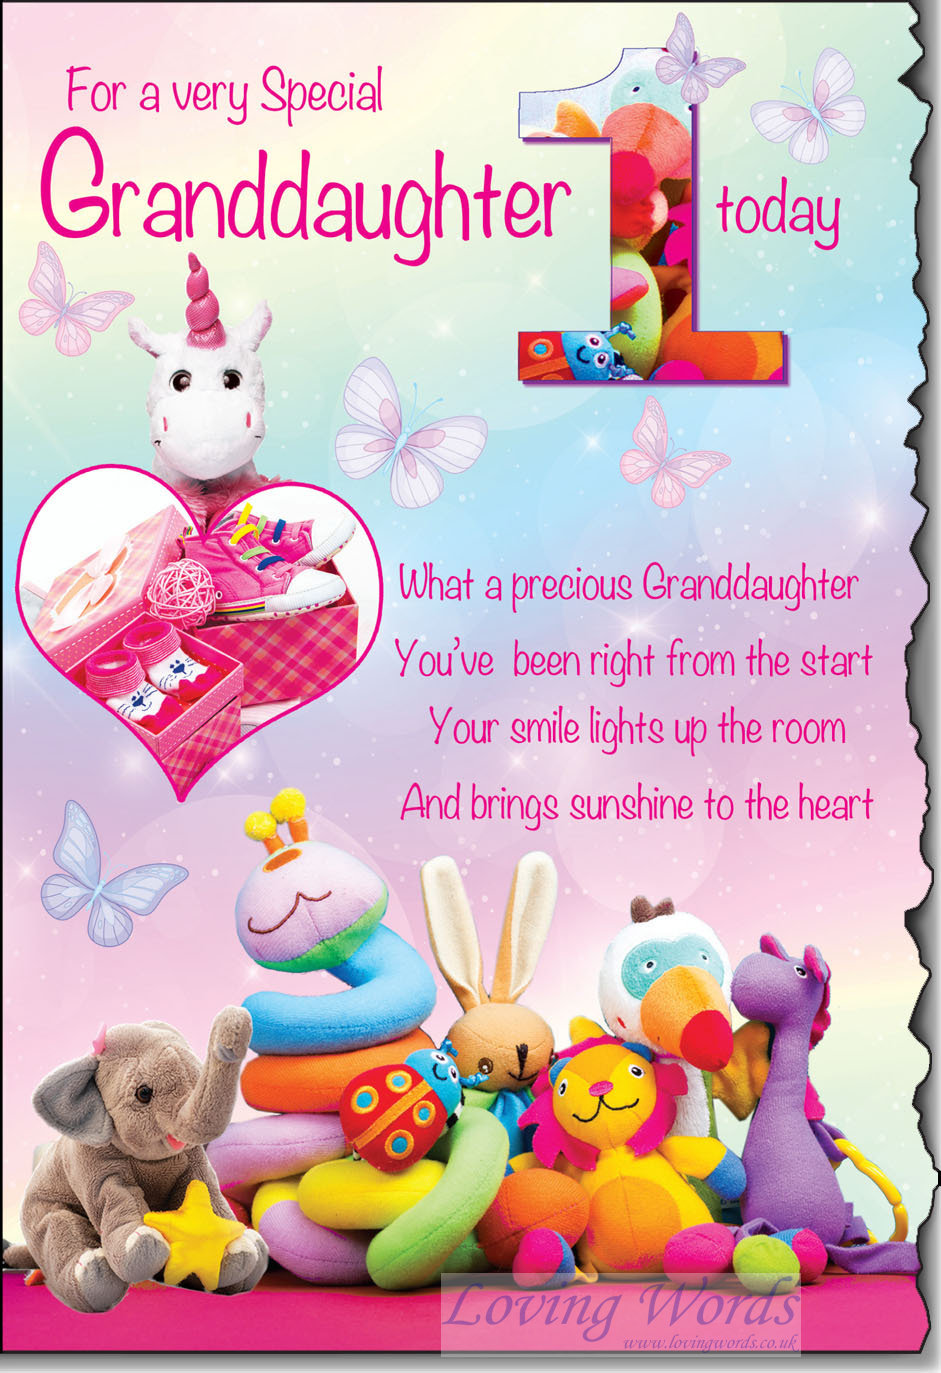 Granddaughter 1st birthday greeting cards by loving words personalised greeting cards m4hsunfo